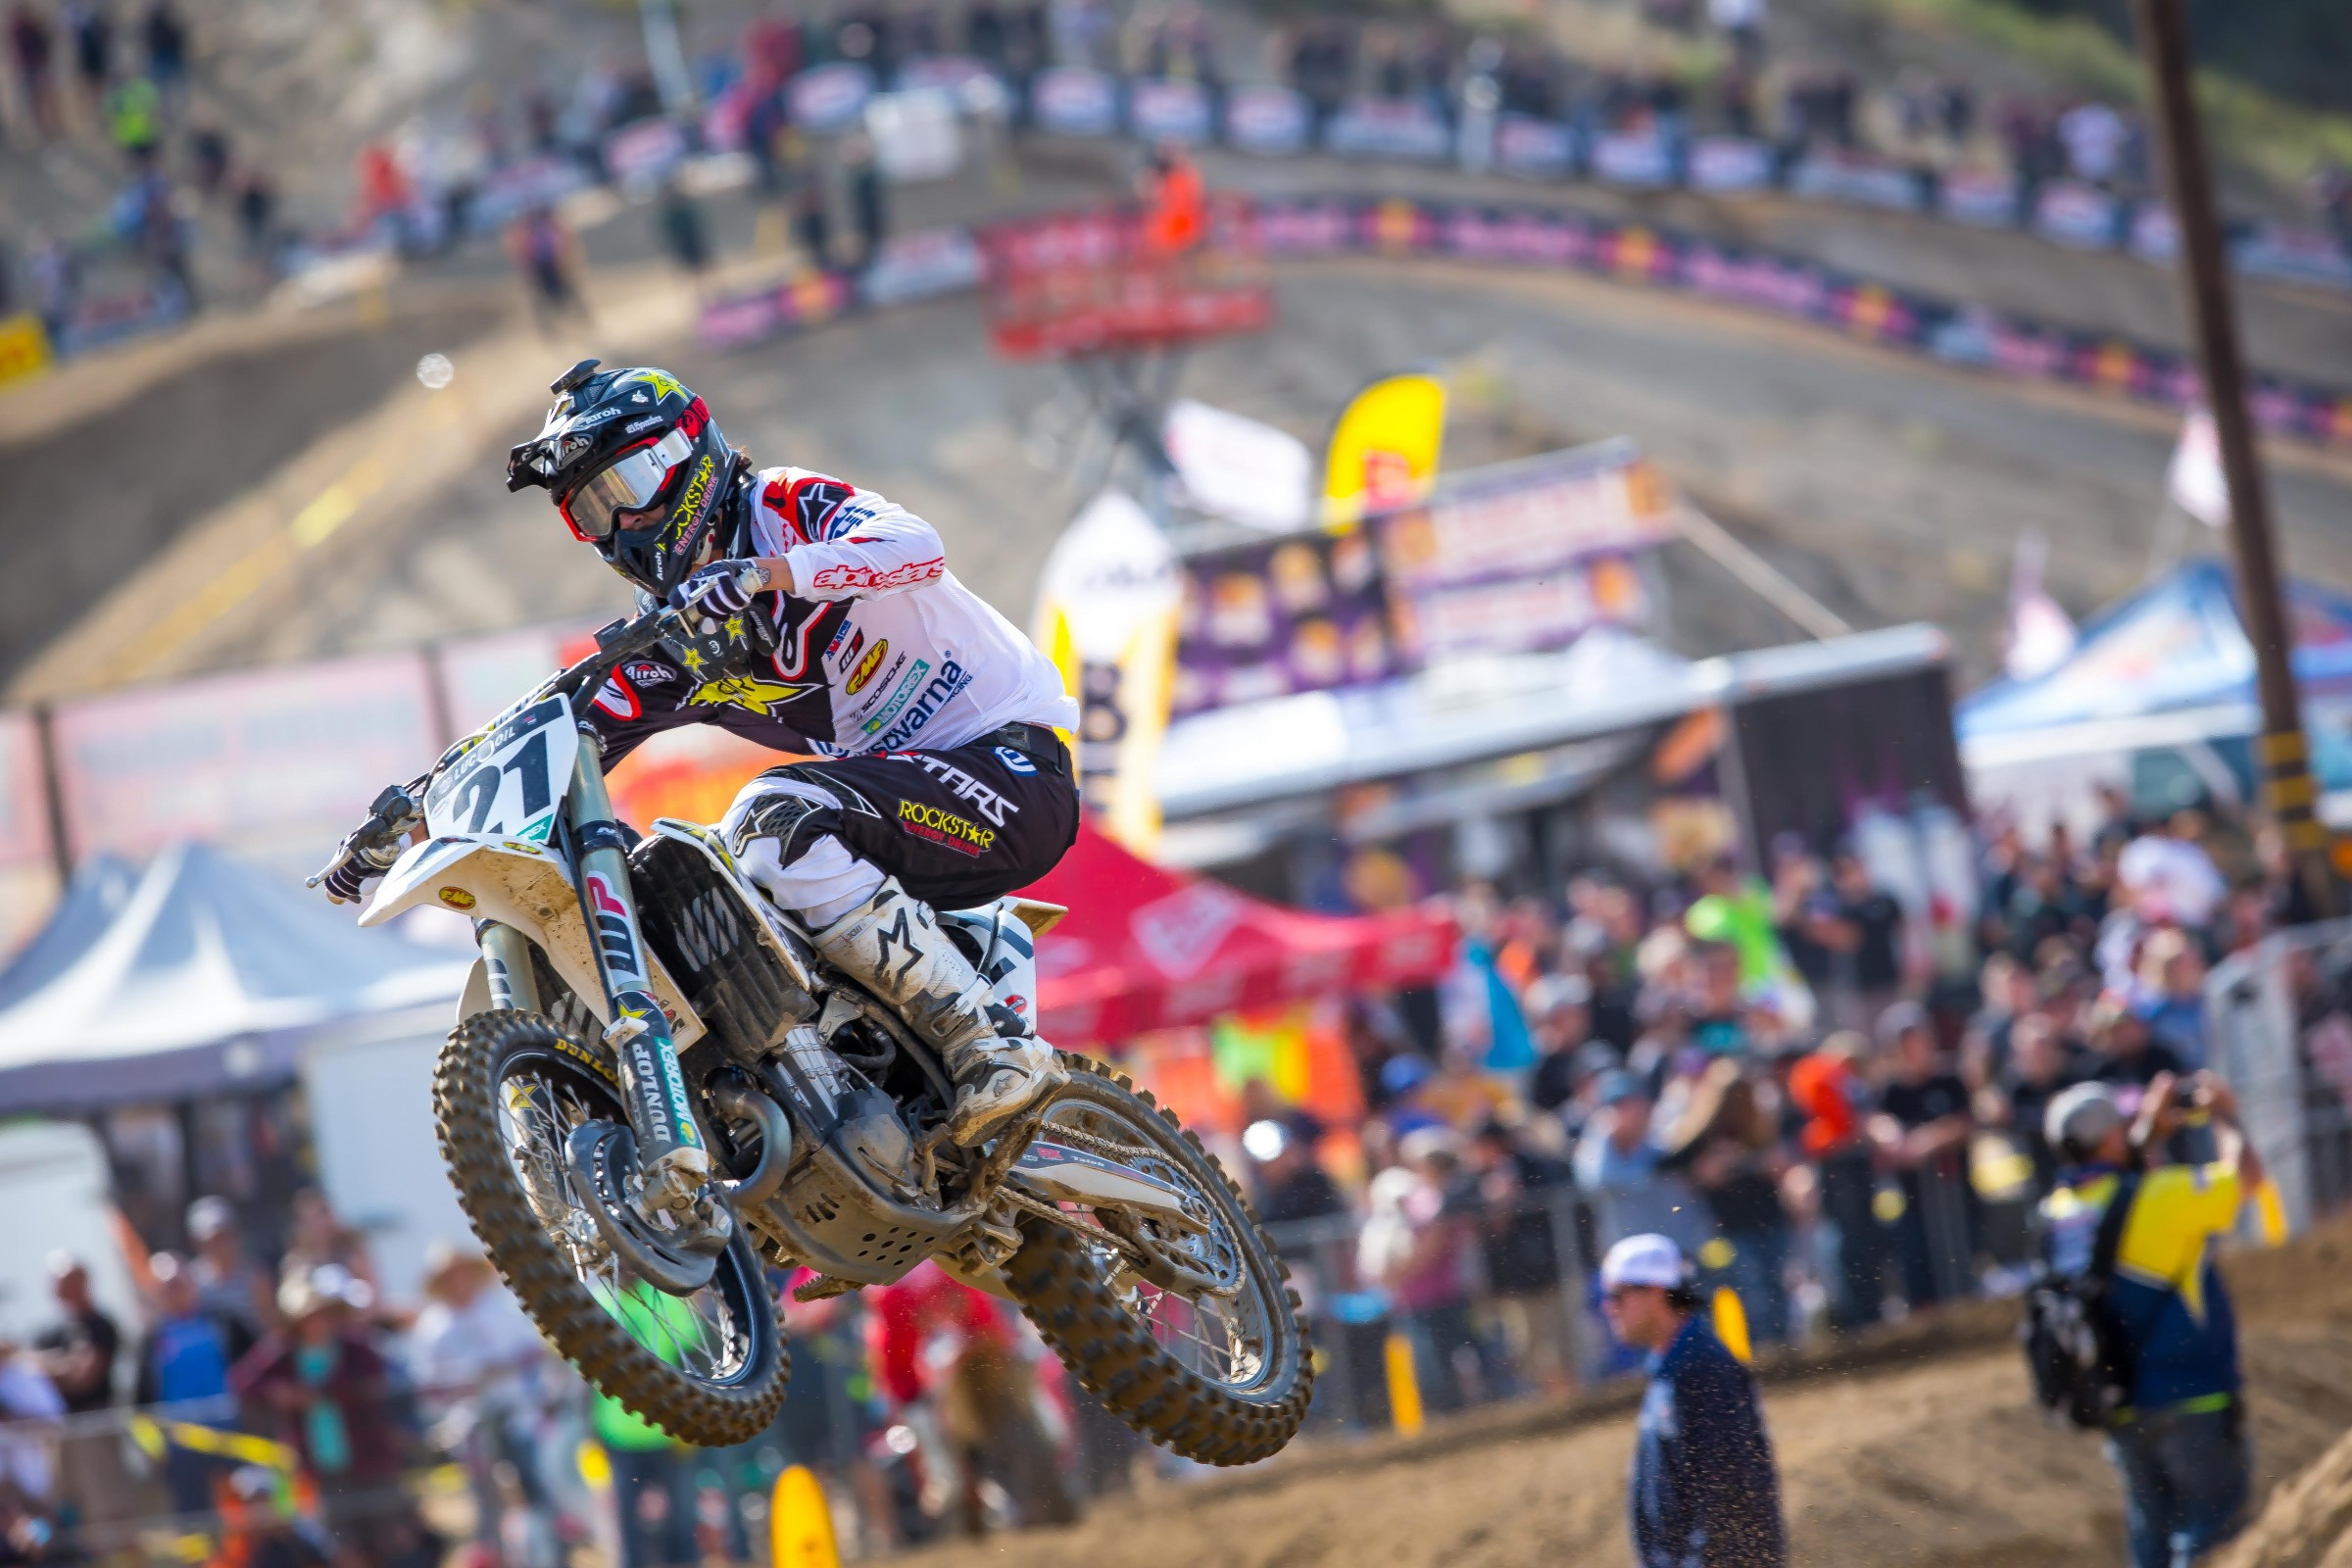 Anderson went 4-3 at the first two nationals of the year, and led large stretches of the second moto at each race.